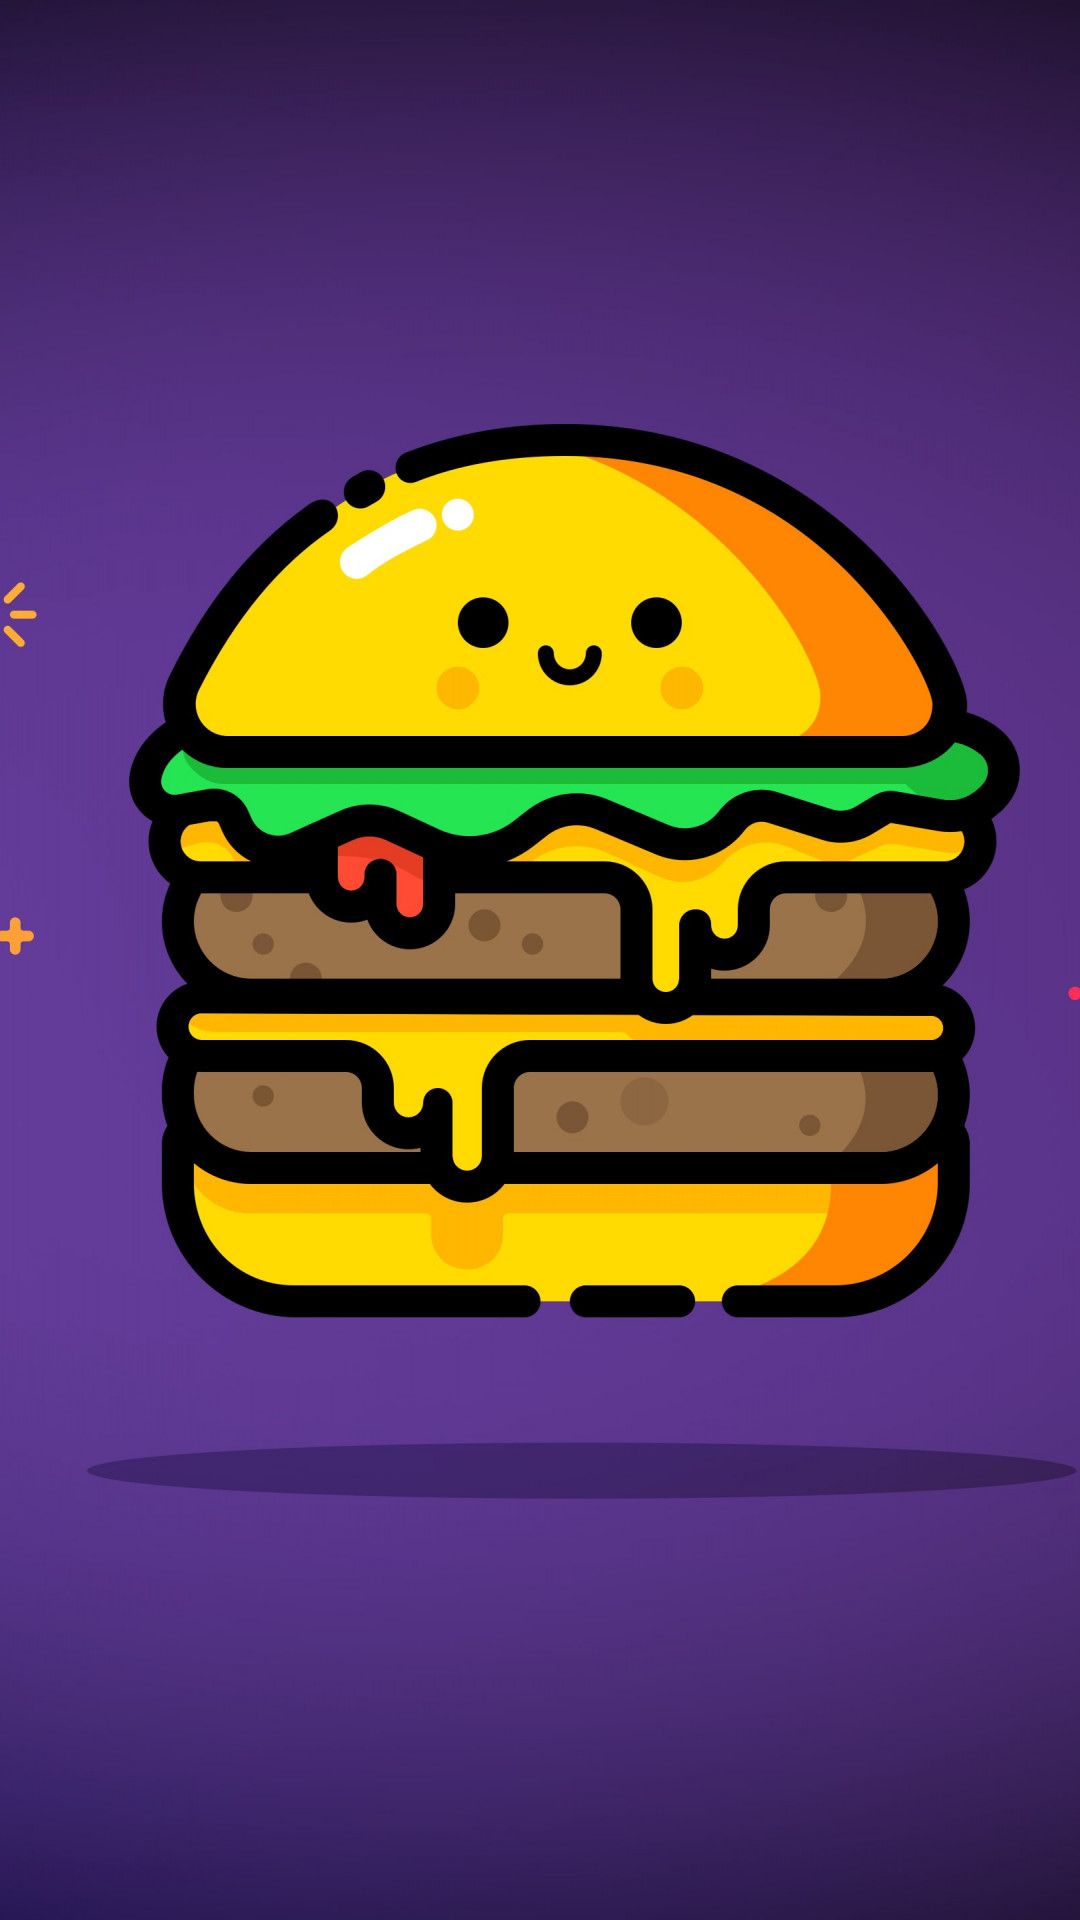 Double cheese wallpaper 1080x1920